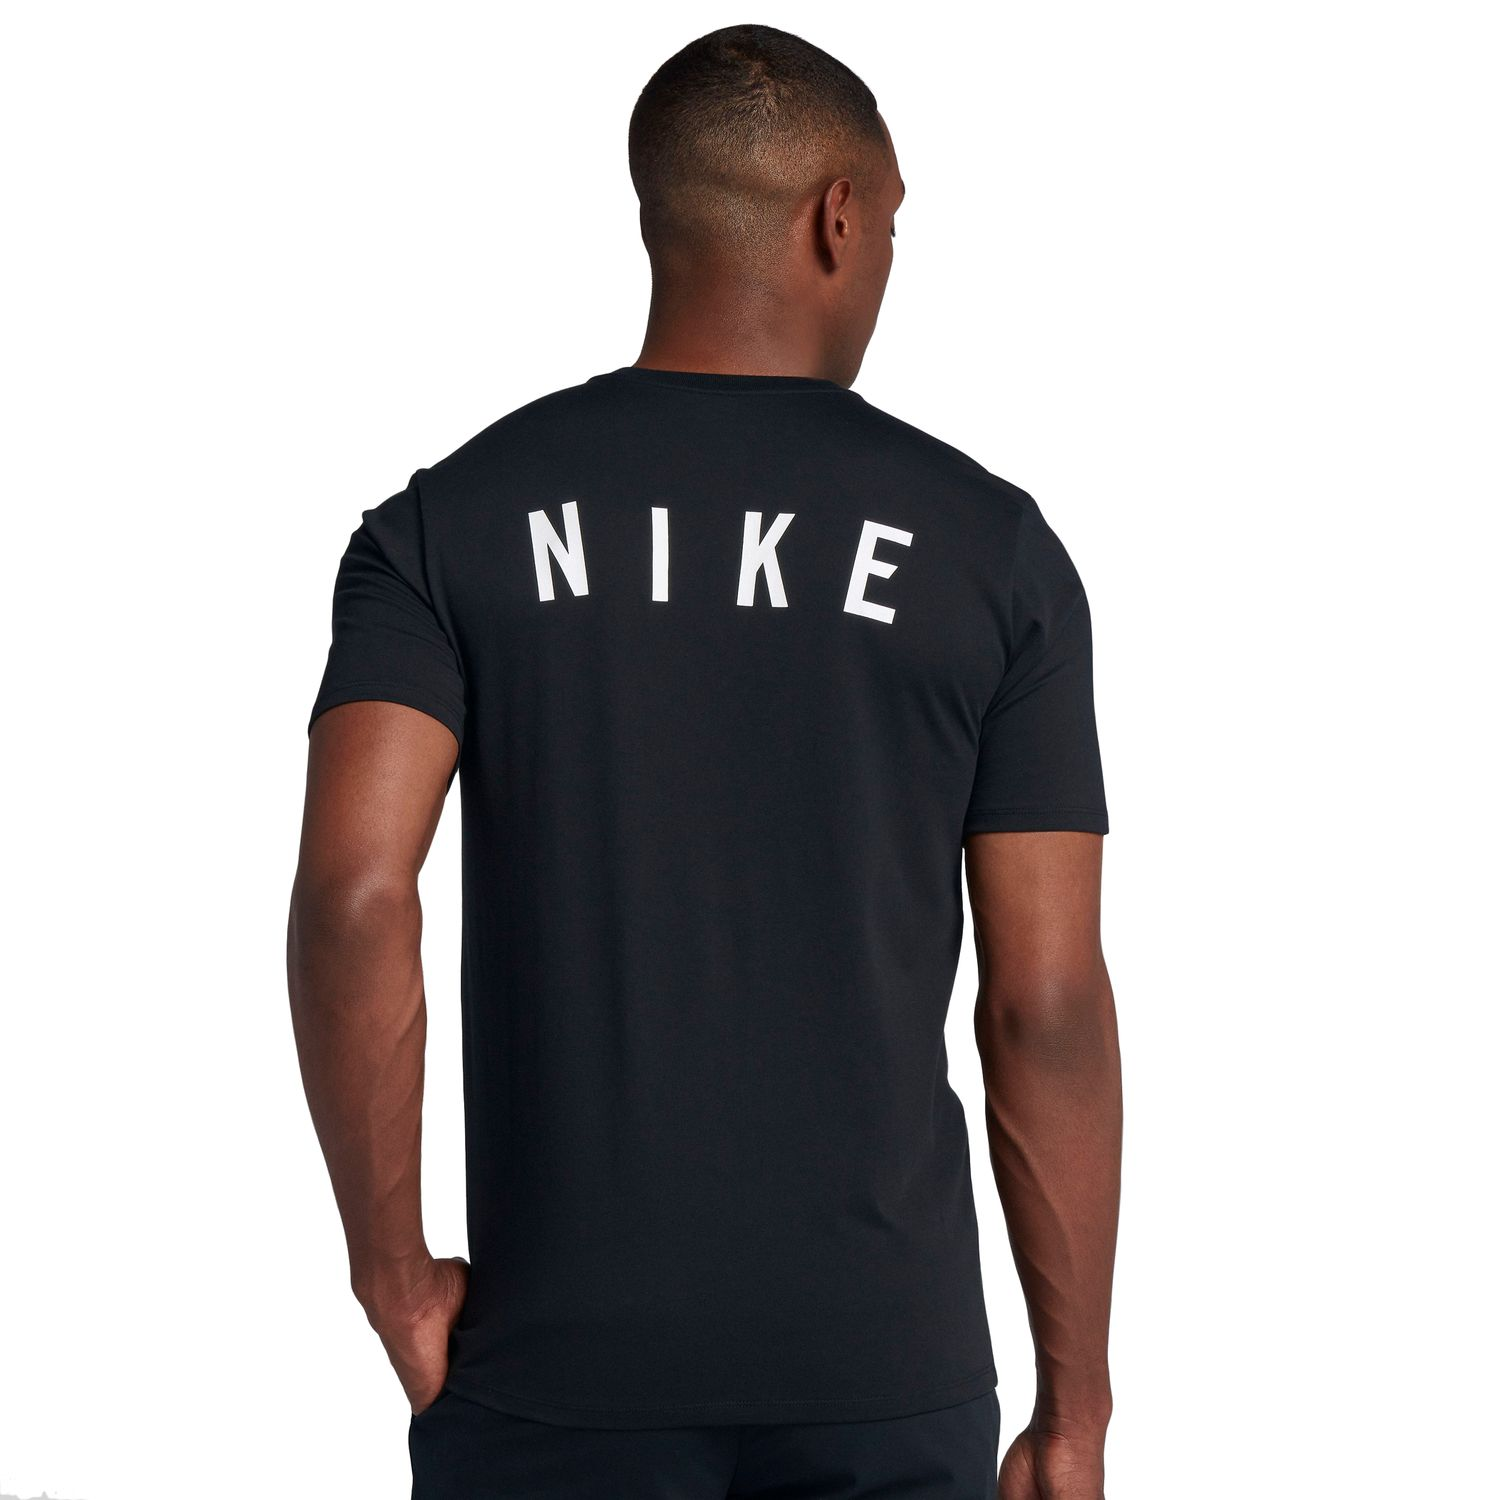 91fd7e64d Nike Dri Fit Golf Shirts Kohls - DREAMWORKS